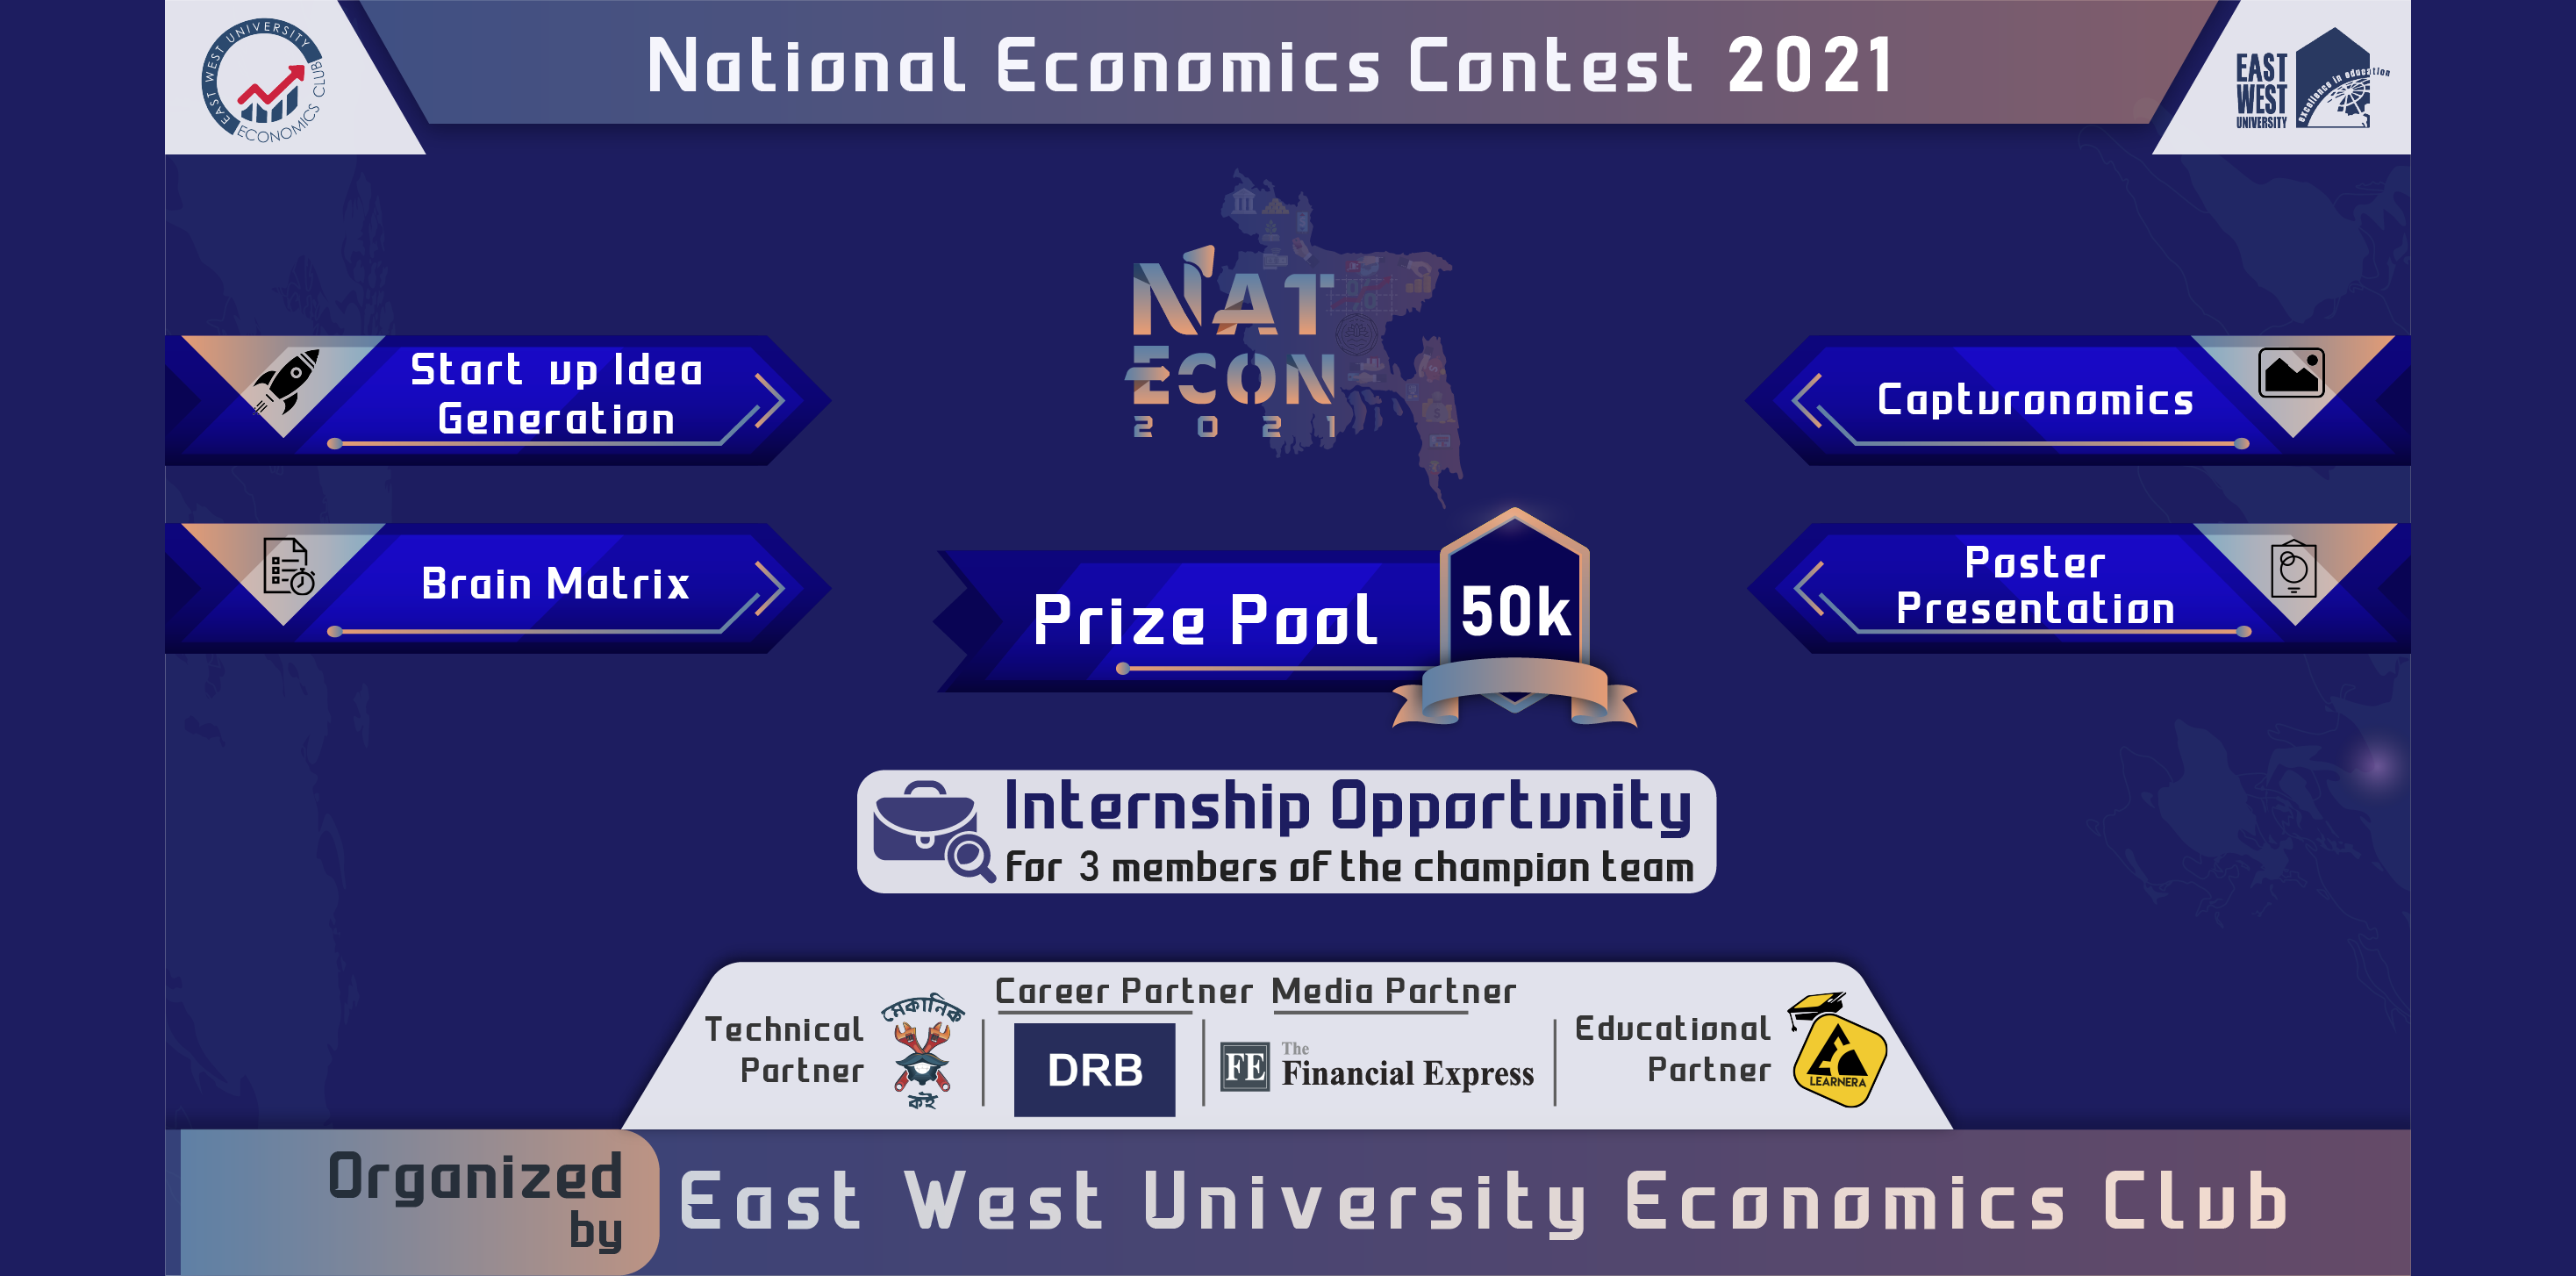 NatEcon 2021: National Economics Contest 2021